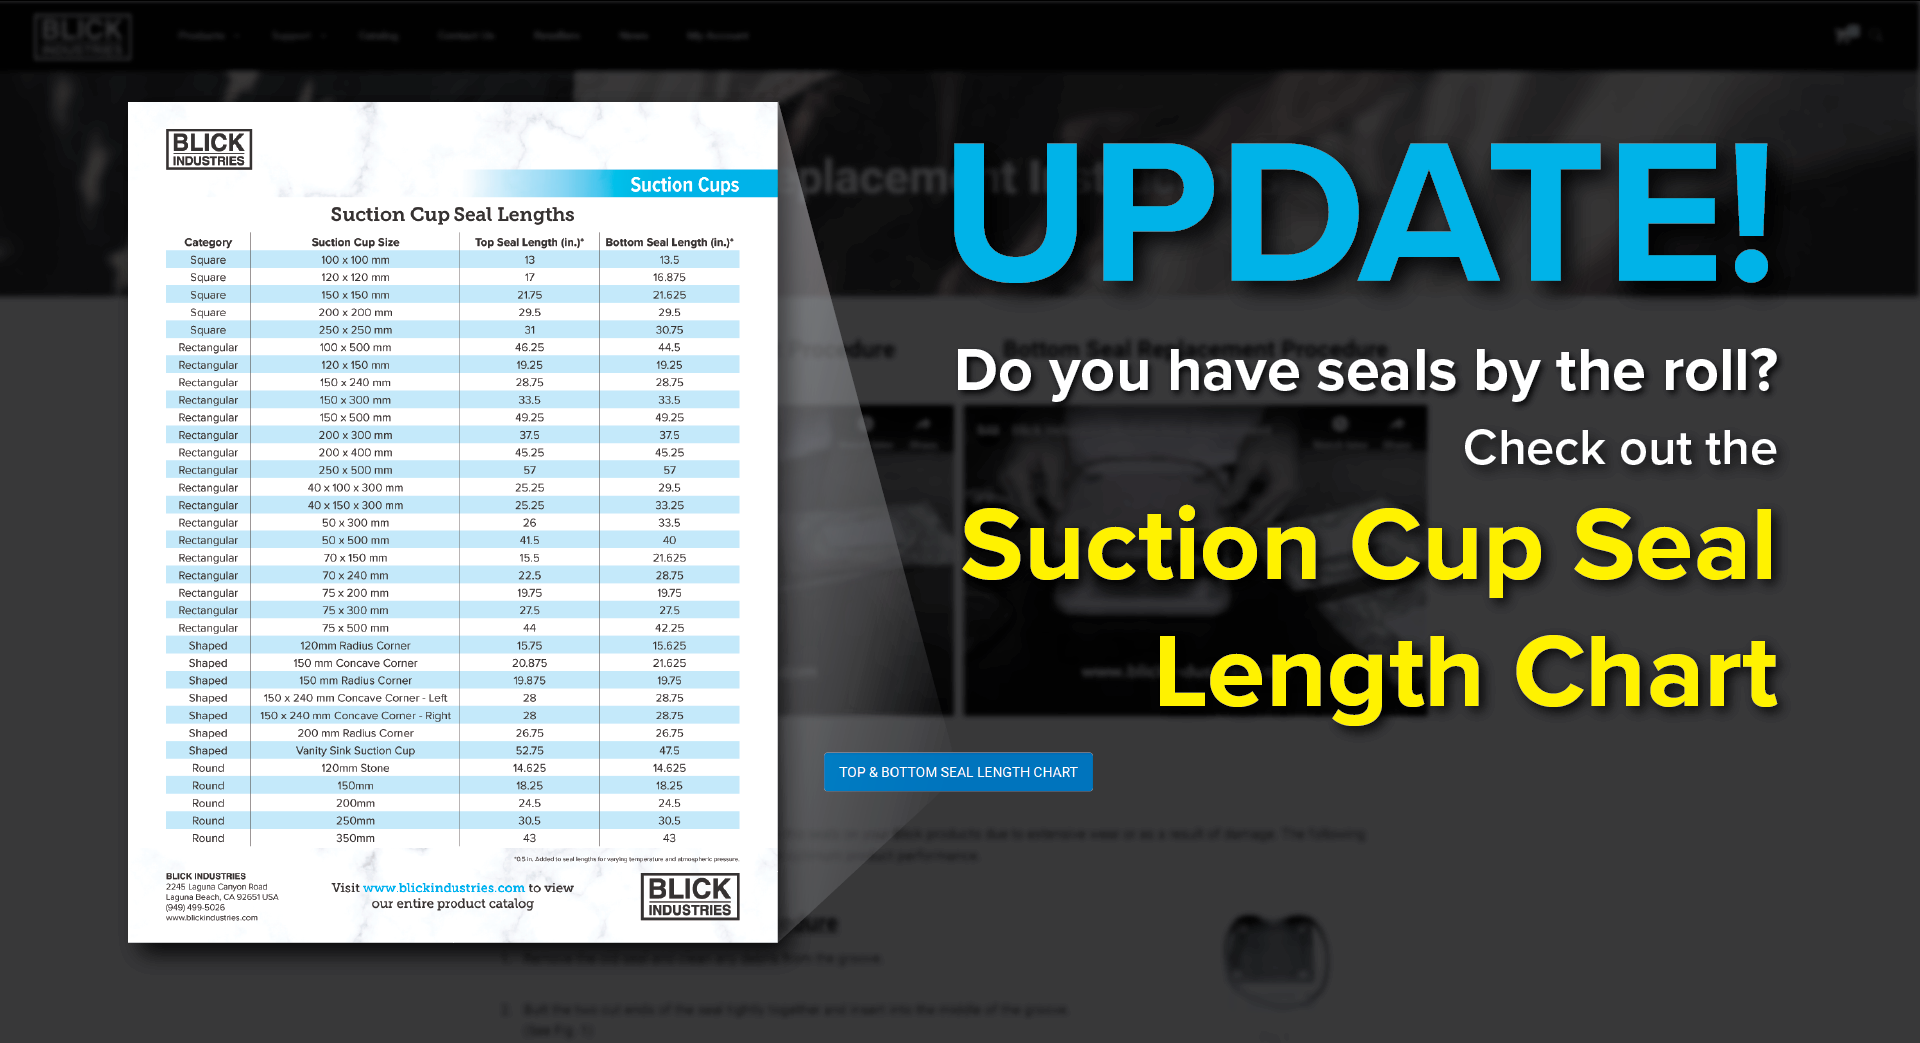 Suction Cup Seal Length Chart